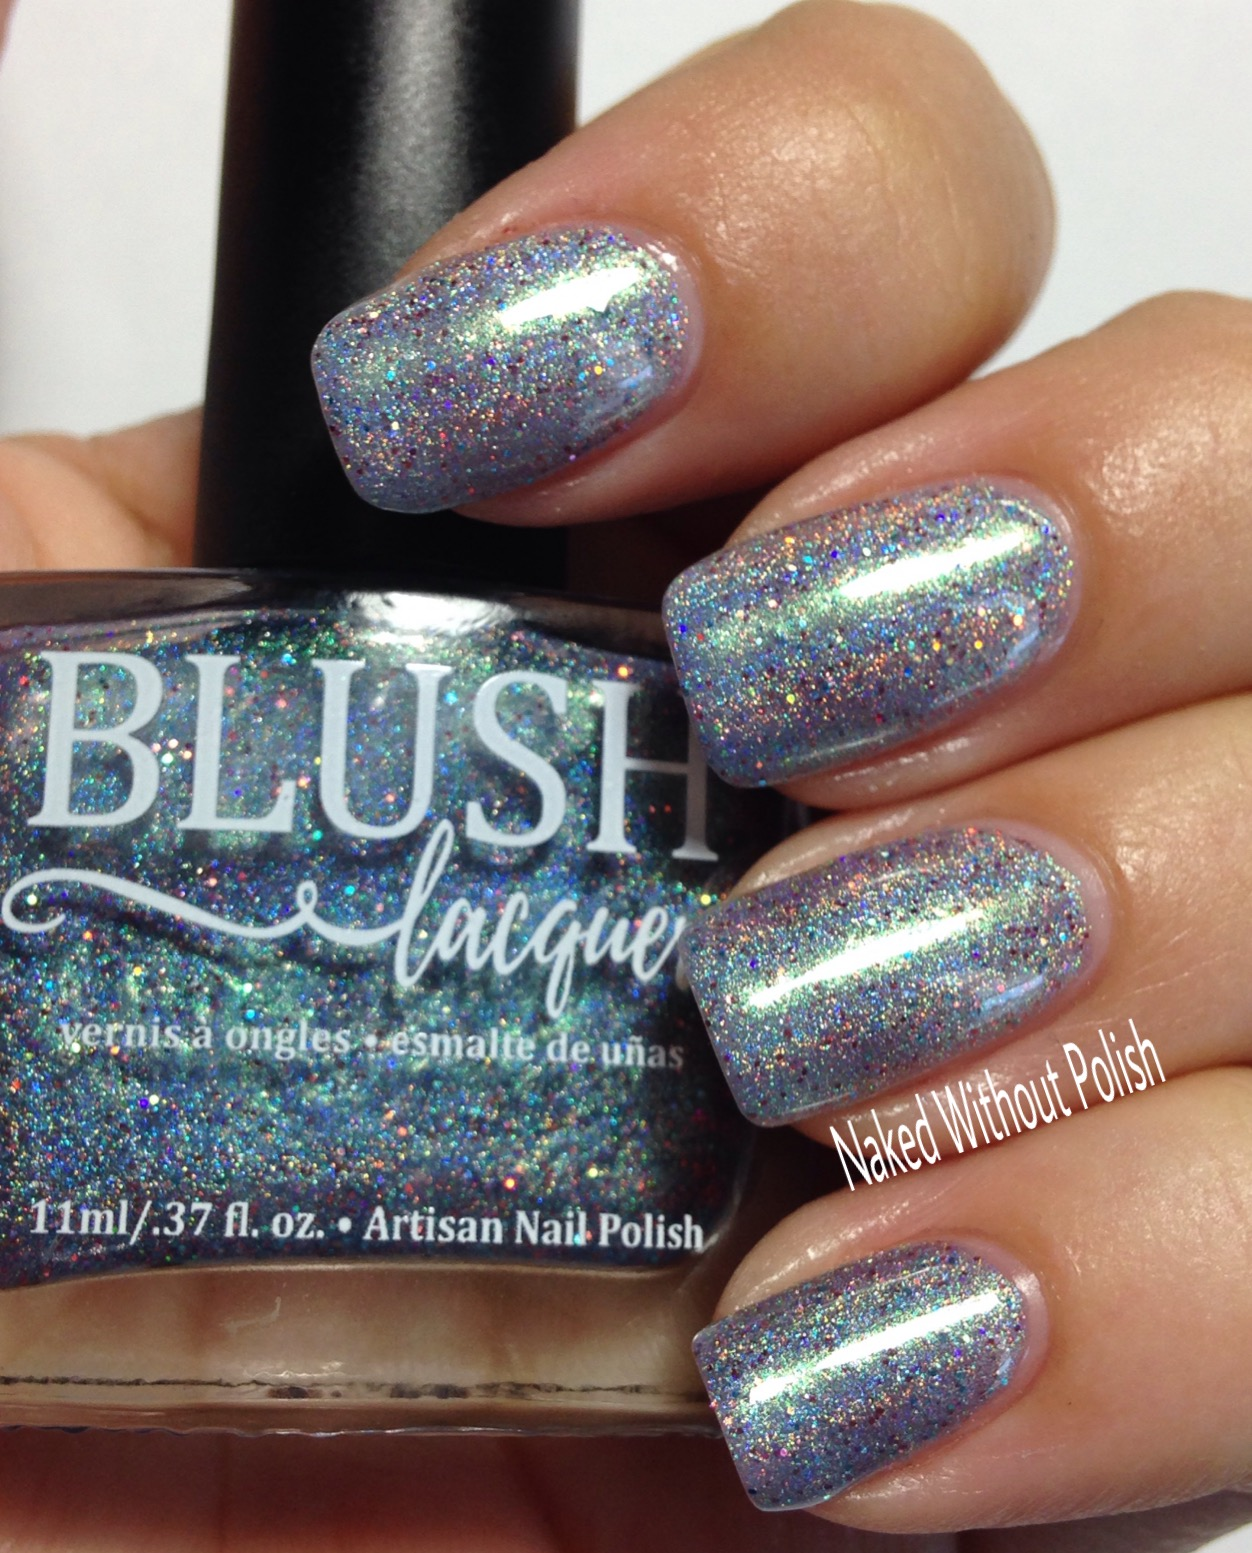 Polish-Pickup-Blush-Lacquers-Hop-on-the-Bandwagon-11